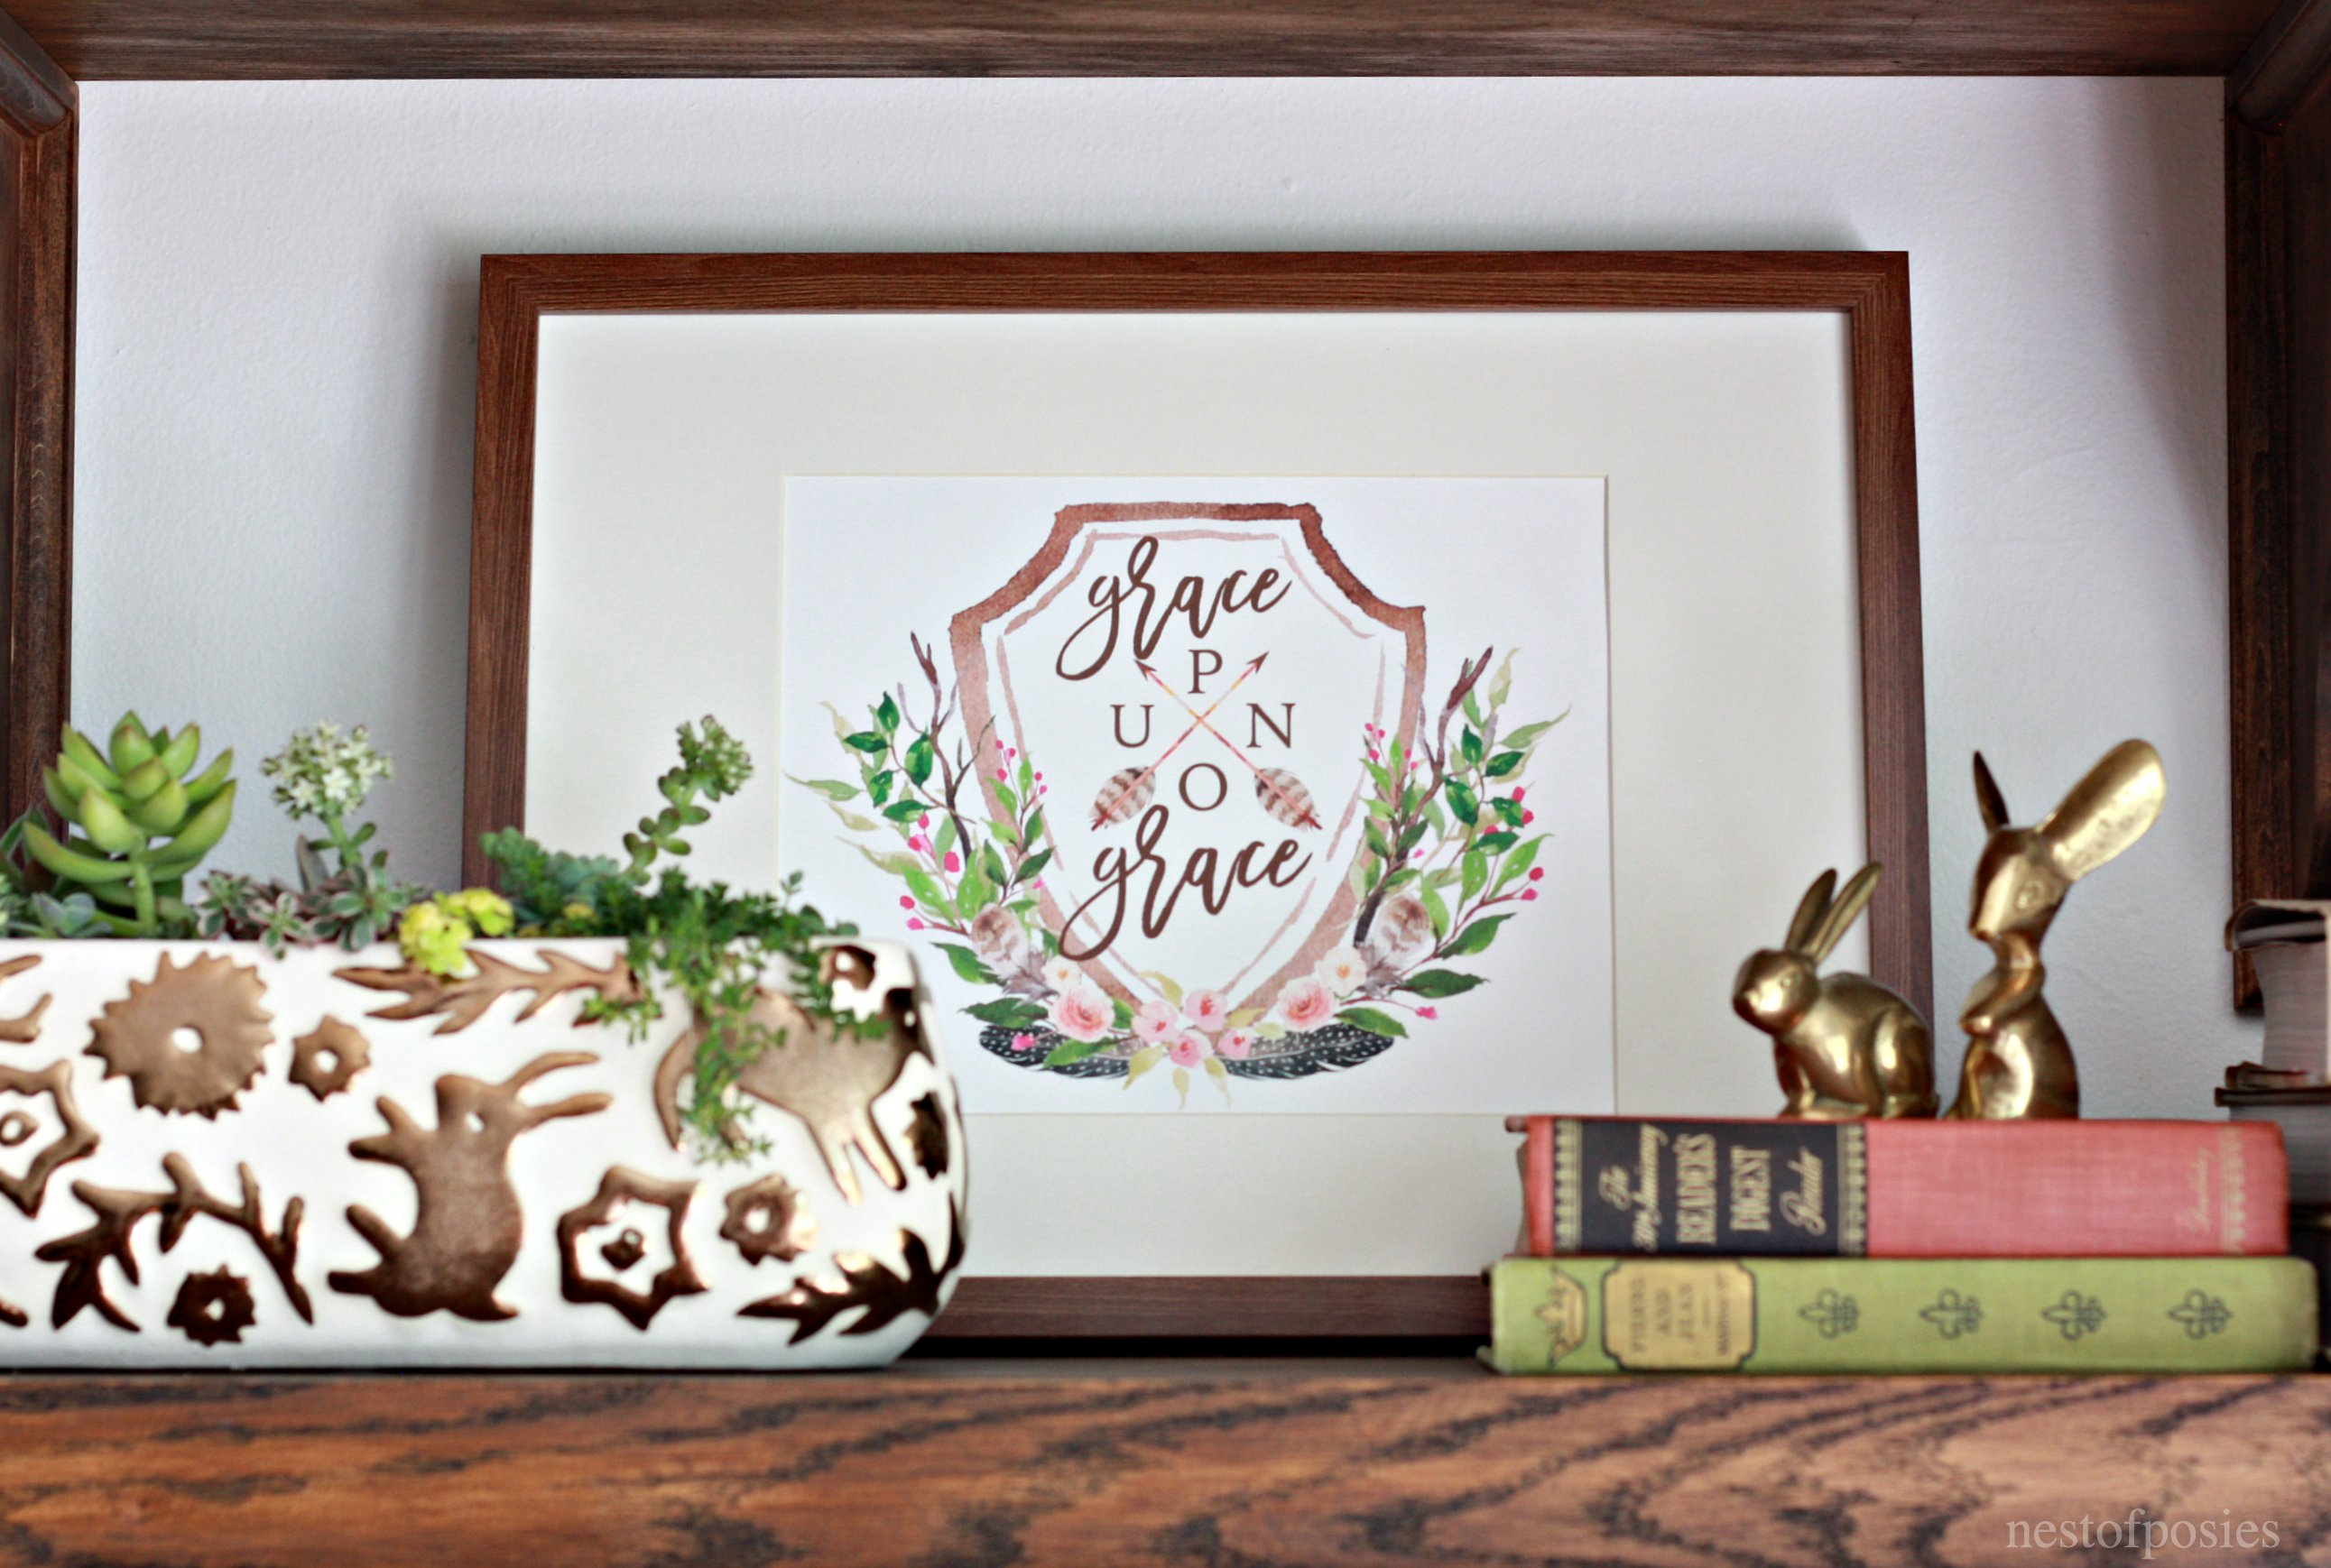 Grace Upon Grace Printable and styling shelves for your home